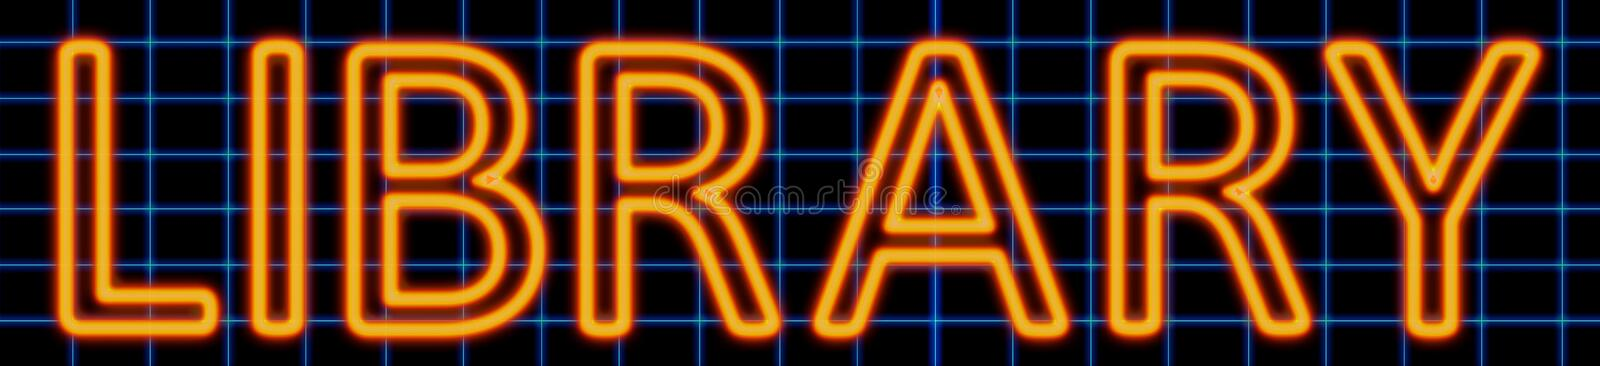 Library neon sign stock illustration